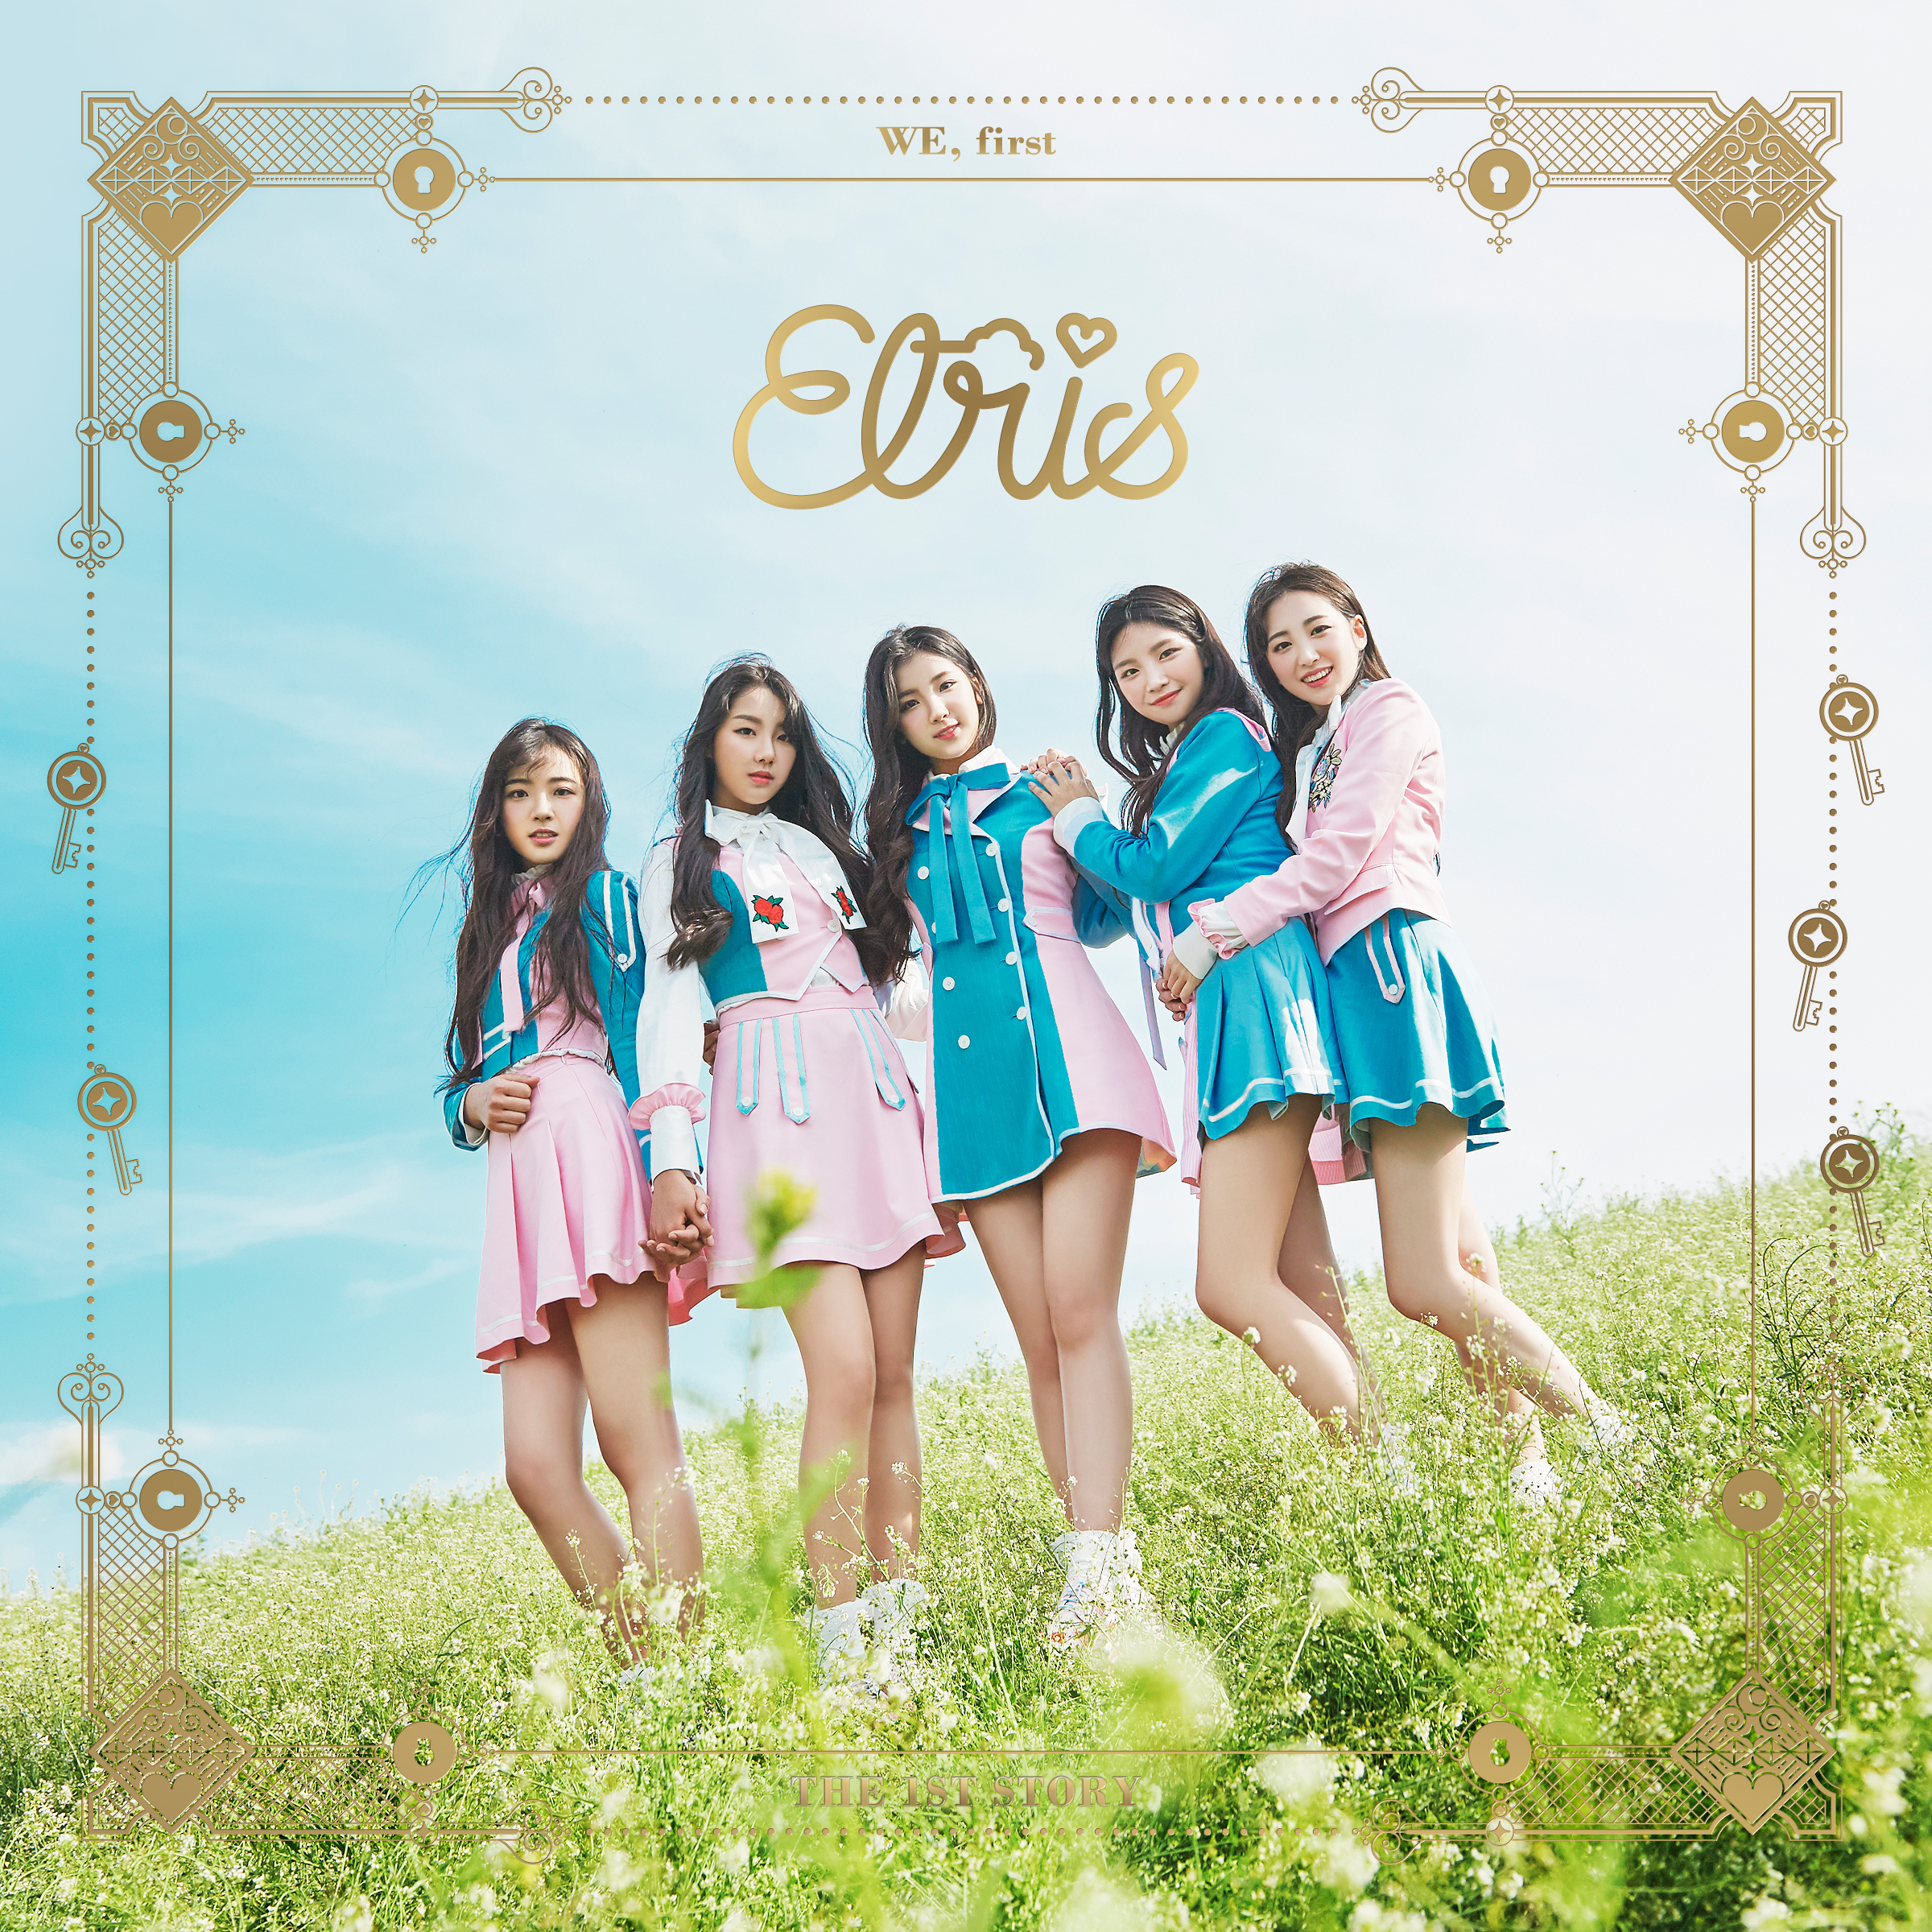 20170801.0411.09 Elris - We, first cover.jpg